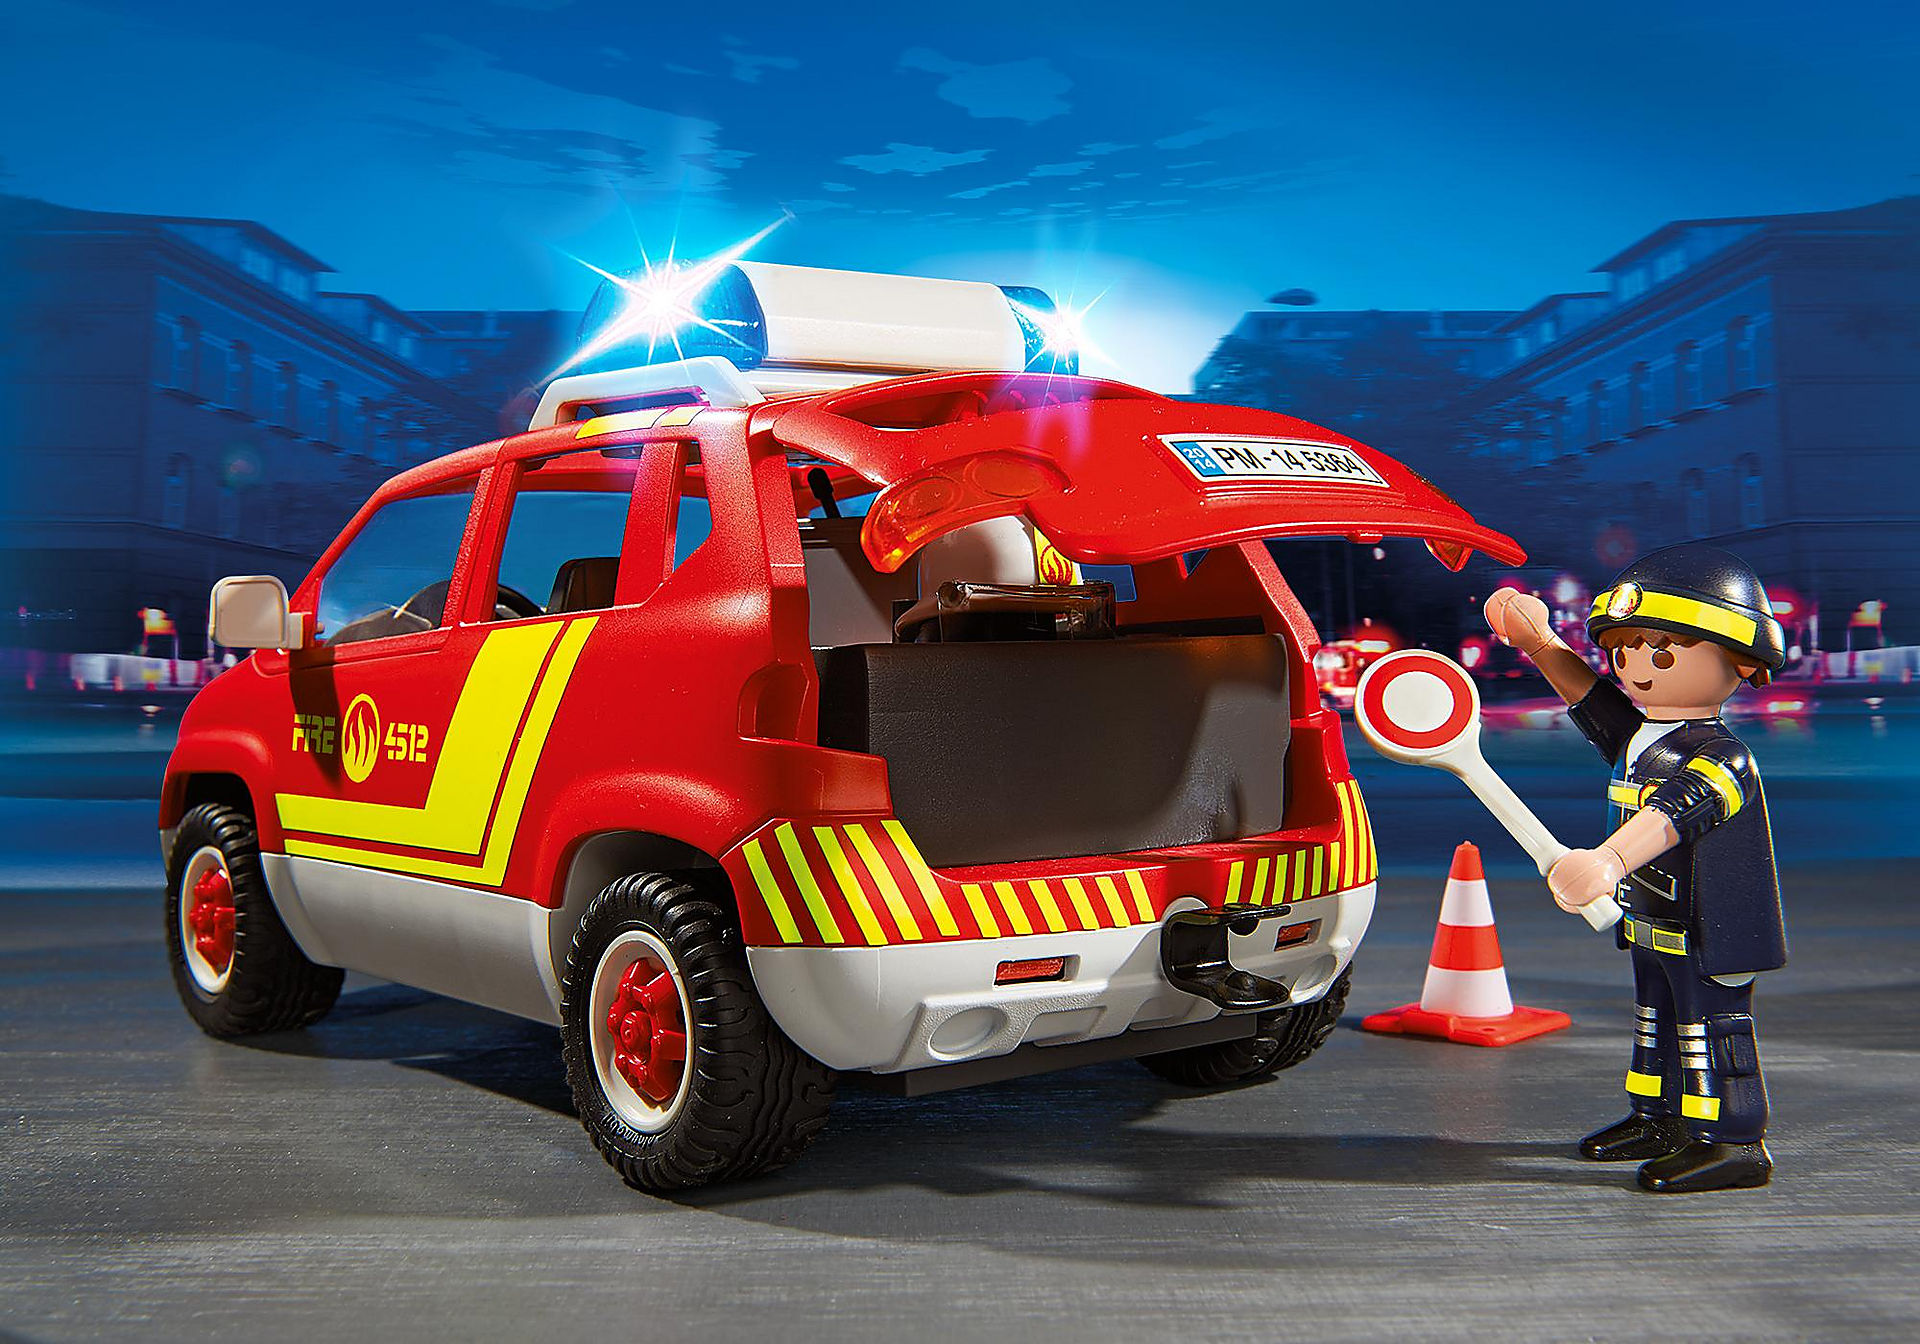 http://media.playmobil.com/i/playmobil/5364_product_extra2/Fire Chief´s Car with Lights and Sound